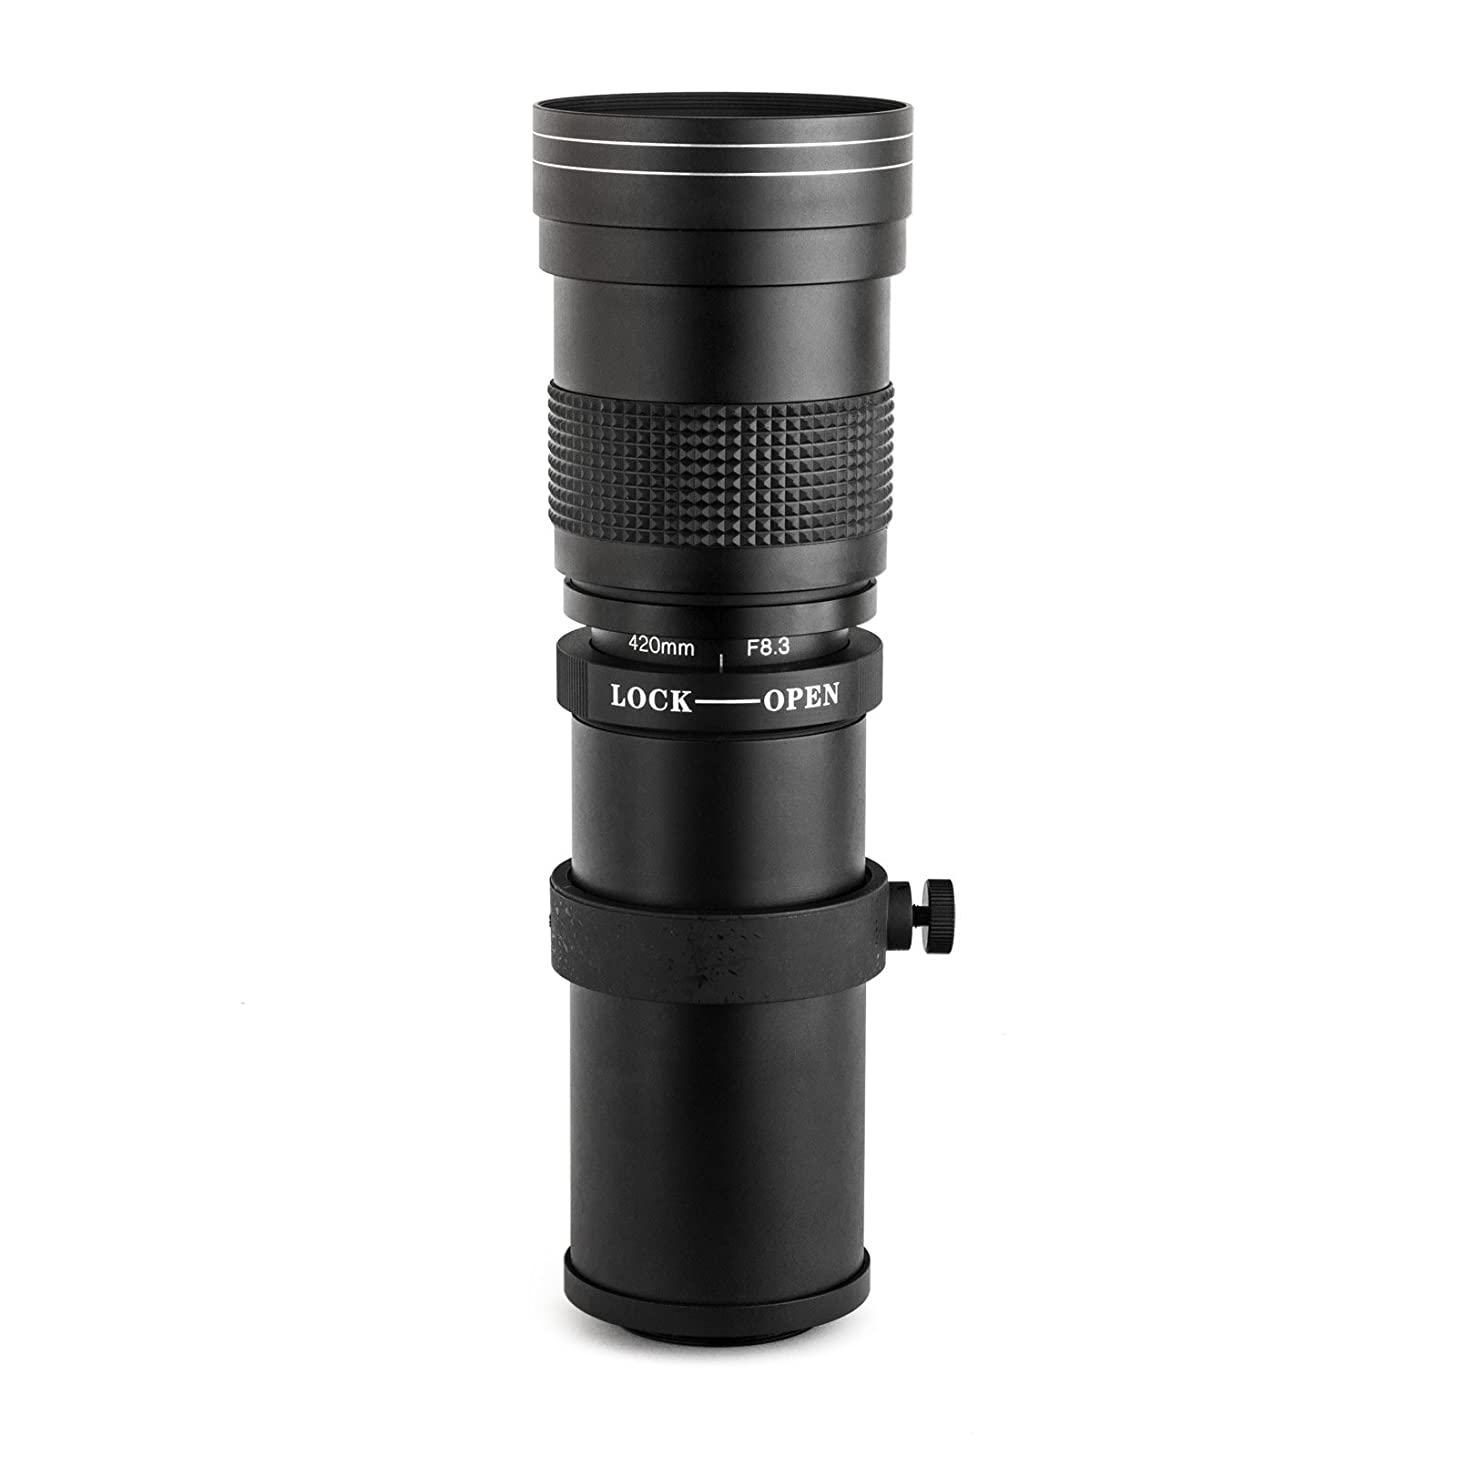 Opteka 420-800mm f/8.3 HD Telephoto Zoom Lens for Sony E-Mount a9, a7r, a7s, a7, a6500, a6300, a6000, a5100, a5000, a3000, NEX-7, NEX-6, NEX-5T, NEX-5N, NEX-5R and NEX-3N Digital Mirrorless Cameras